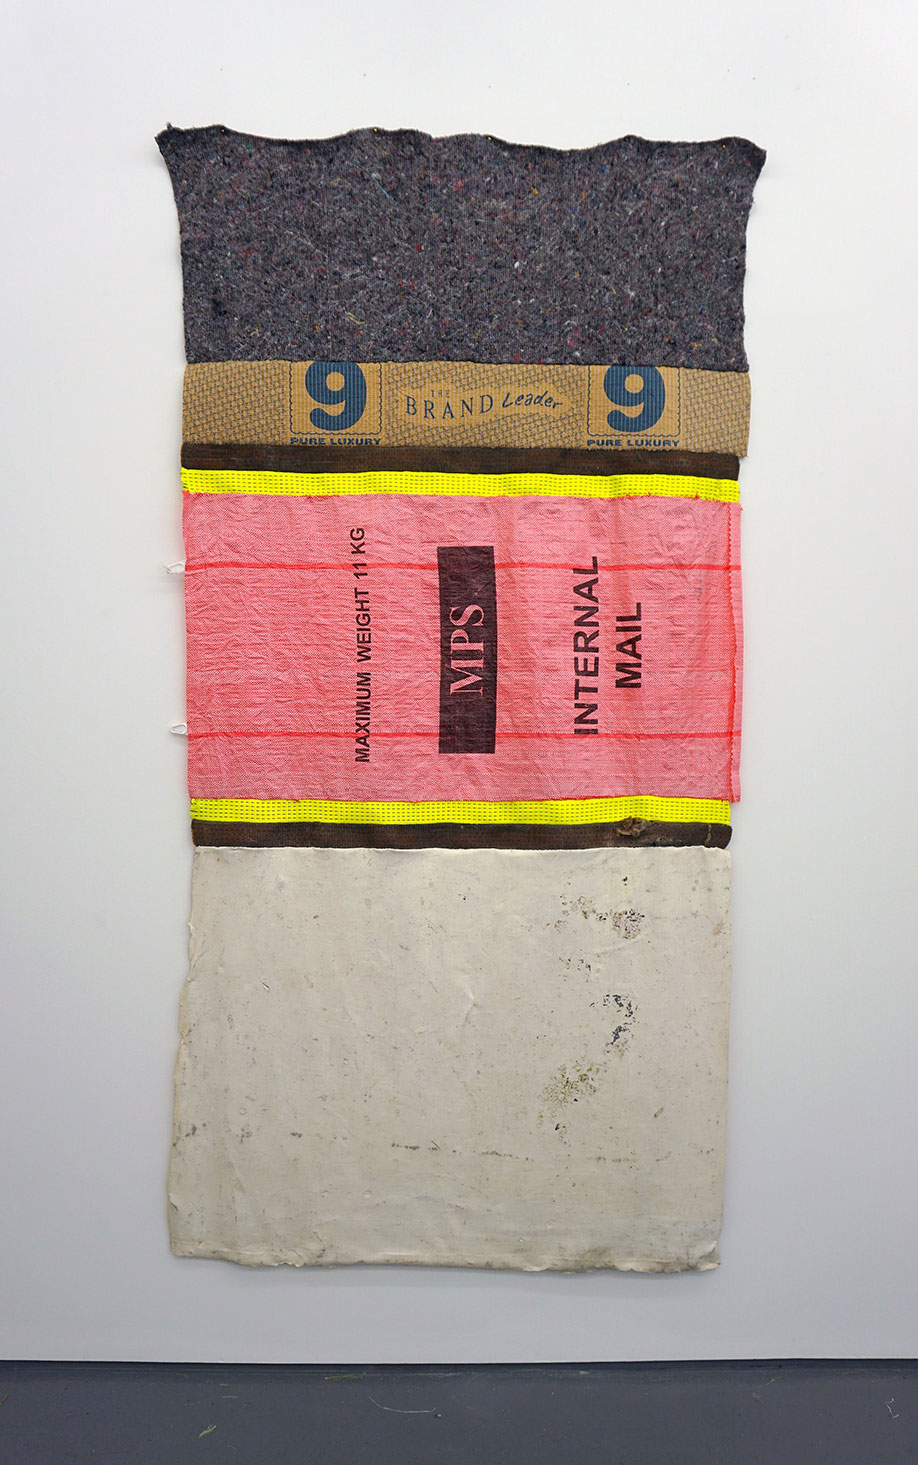 <b>Title: </b>Internal Mail<br /><b>Year: </b>2016<br /><b>Medium: </b>Latex, recycled plastic, recycled fibres, carpet underlay<br /><b>Size: </b>220 x 112 cm